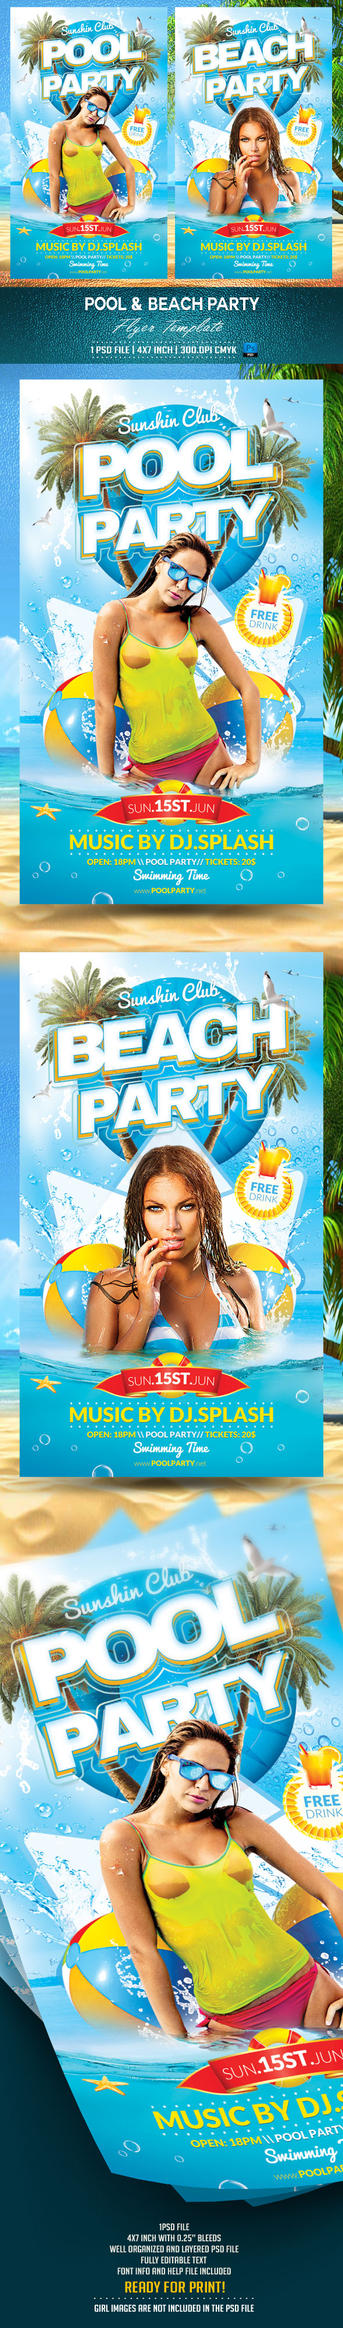 Pool and Beach Party Flyer Template by BriellDesign